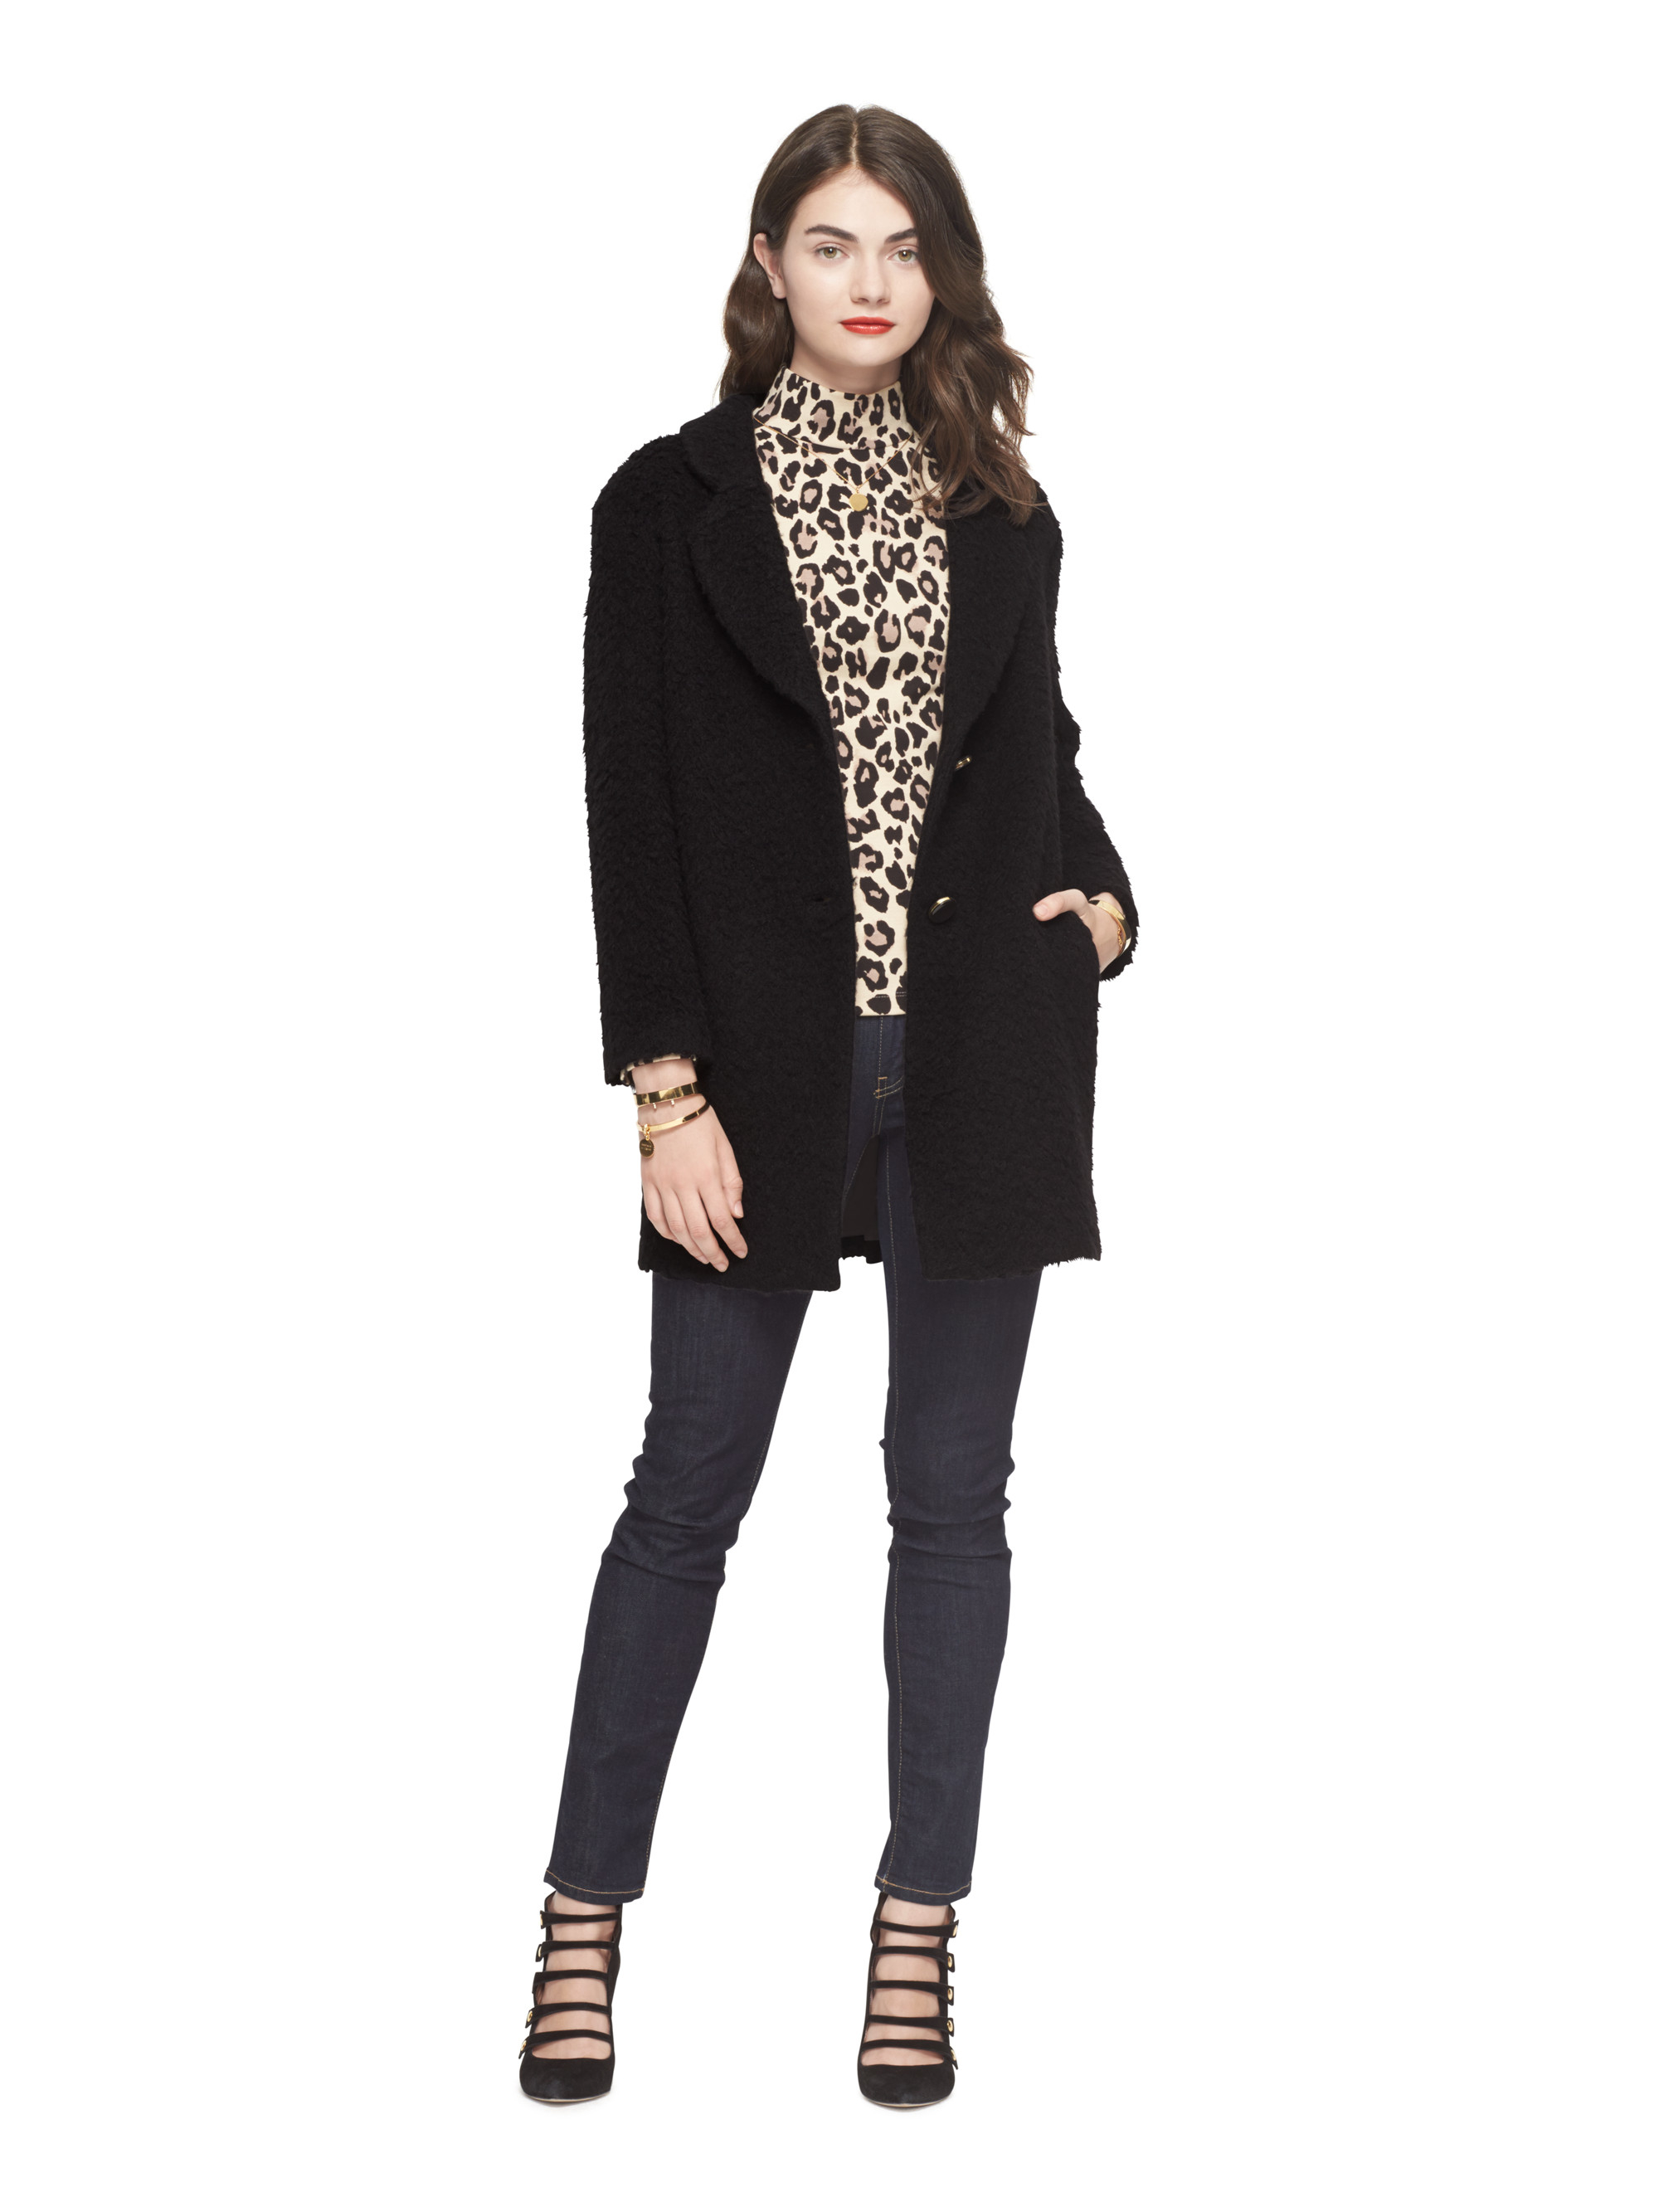 Kate spade new york Fluffy Wool Bow Coat in Black